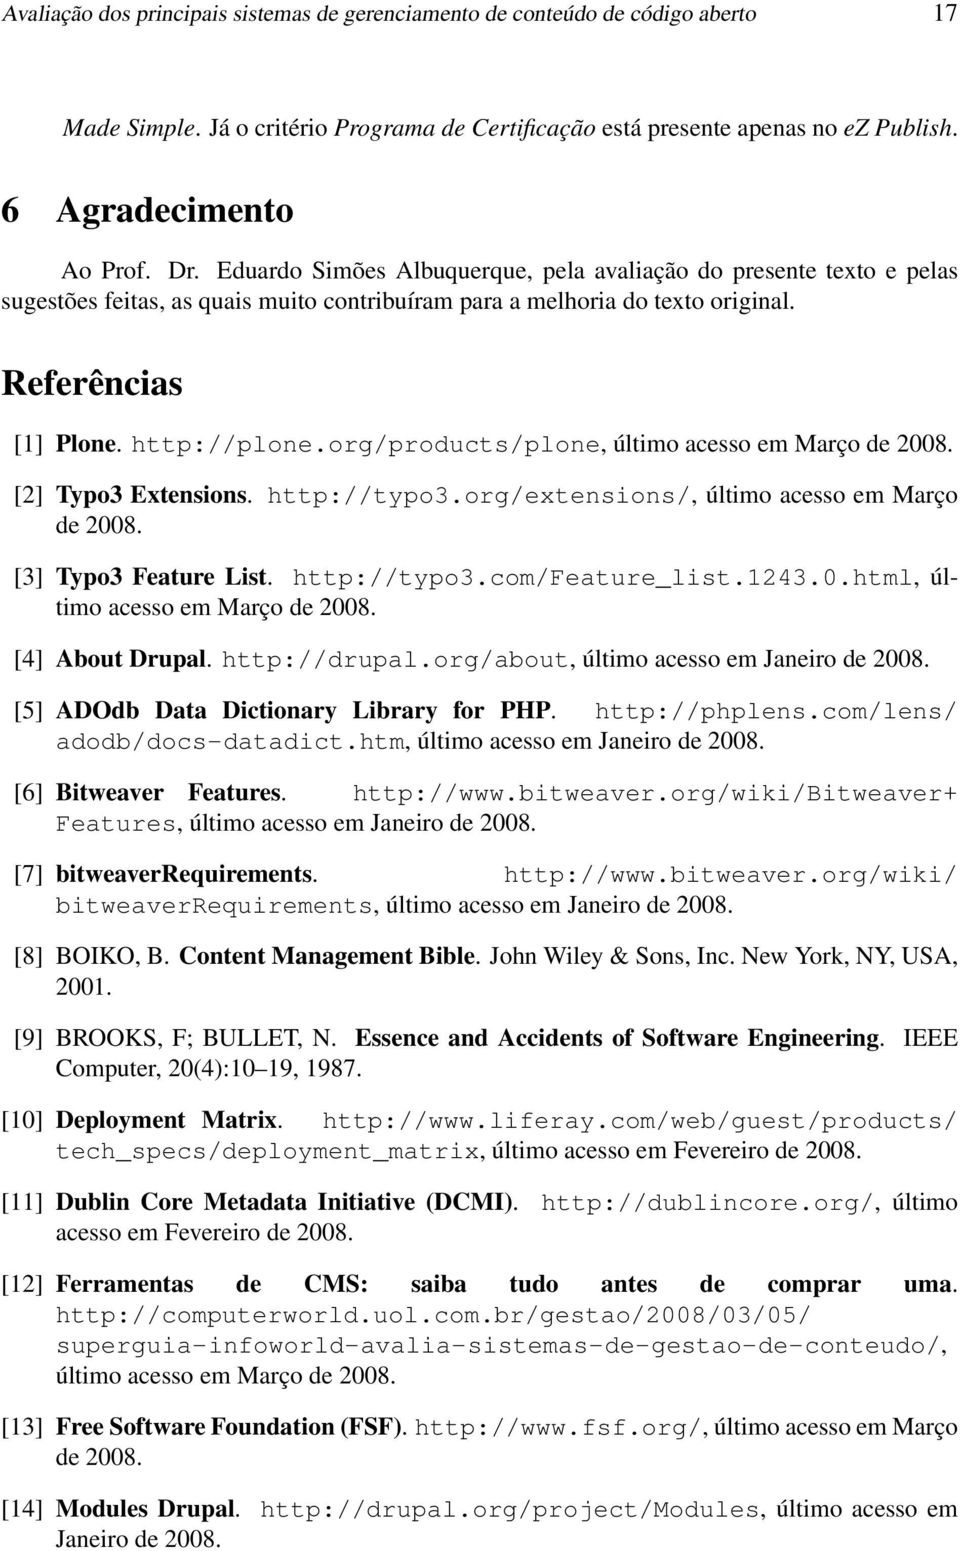 org/products/plone, último acesso em Março de 2008. [2] Typo3 Extensions. http://typo3.org/extensions/, último acesso em Março de 2008. [3] Typo3 Feature List. http://typo3.com/feature_list.1243.0.html, último acesso em Março de 2008.